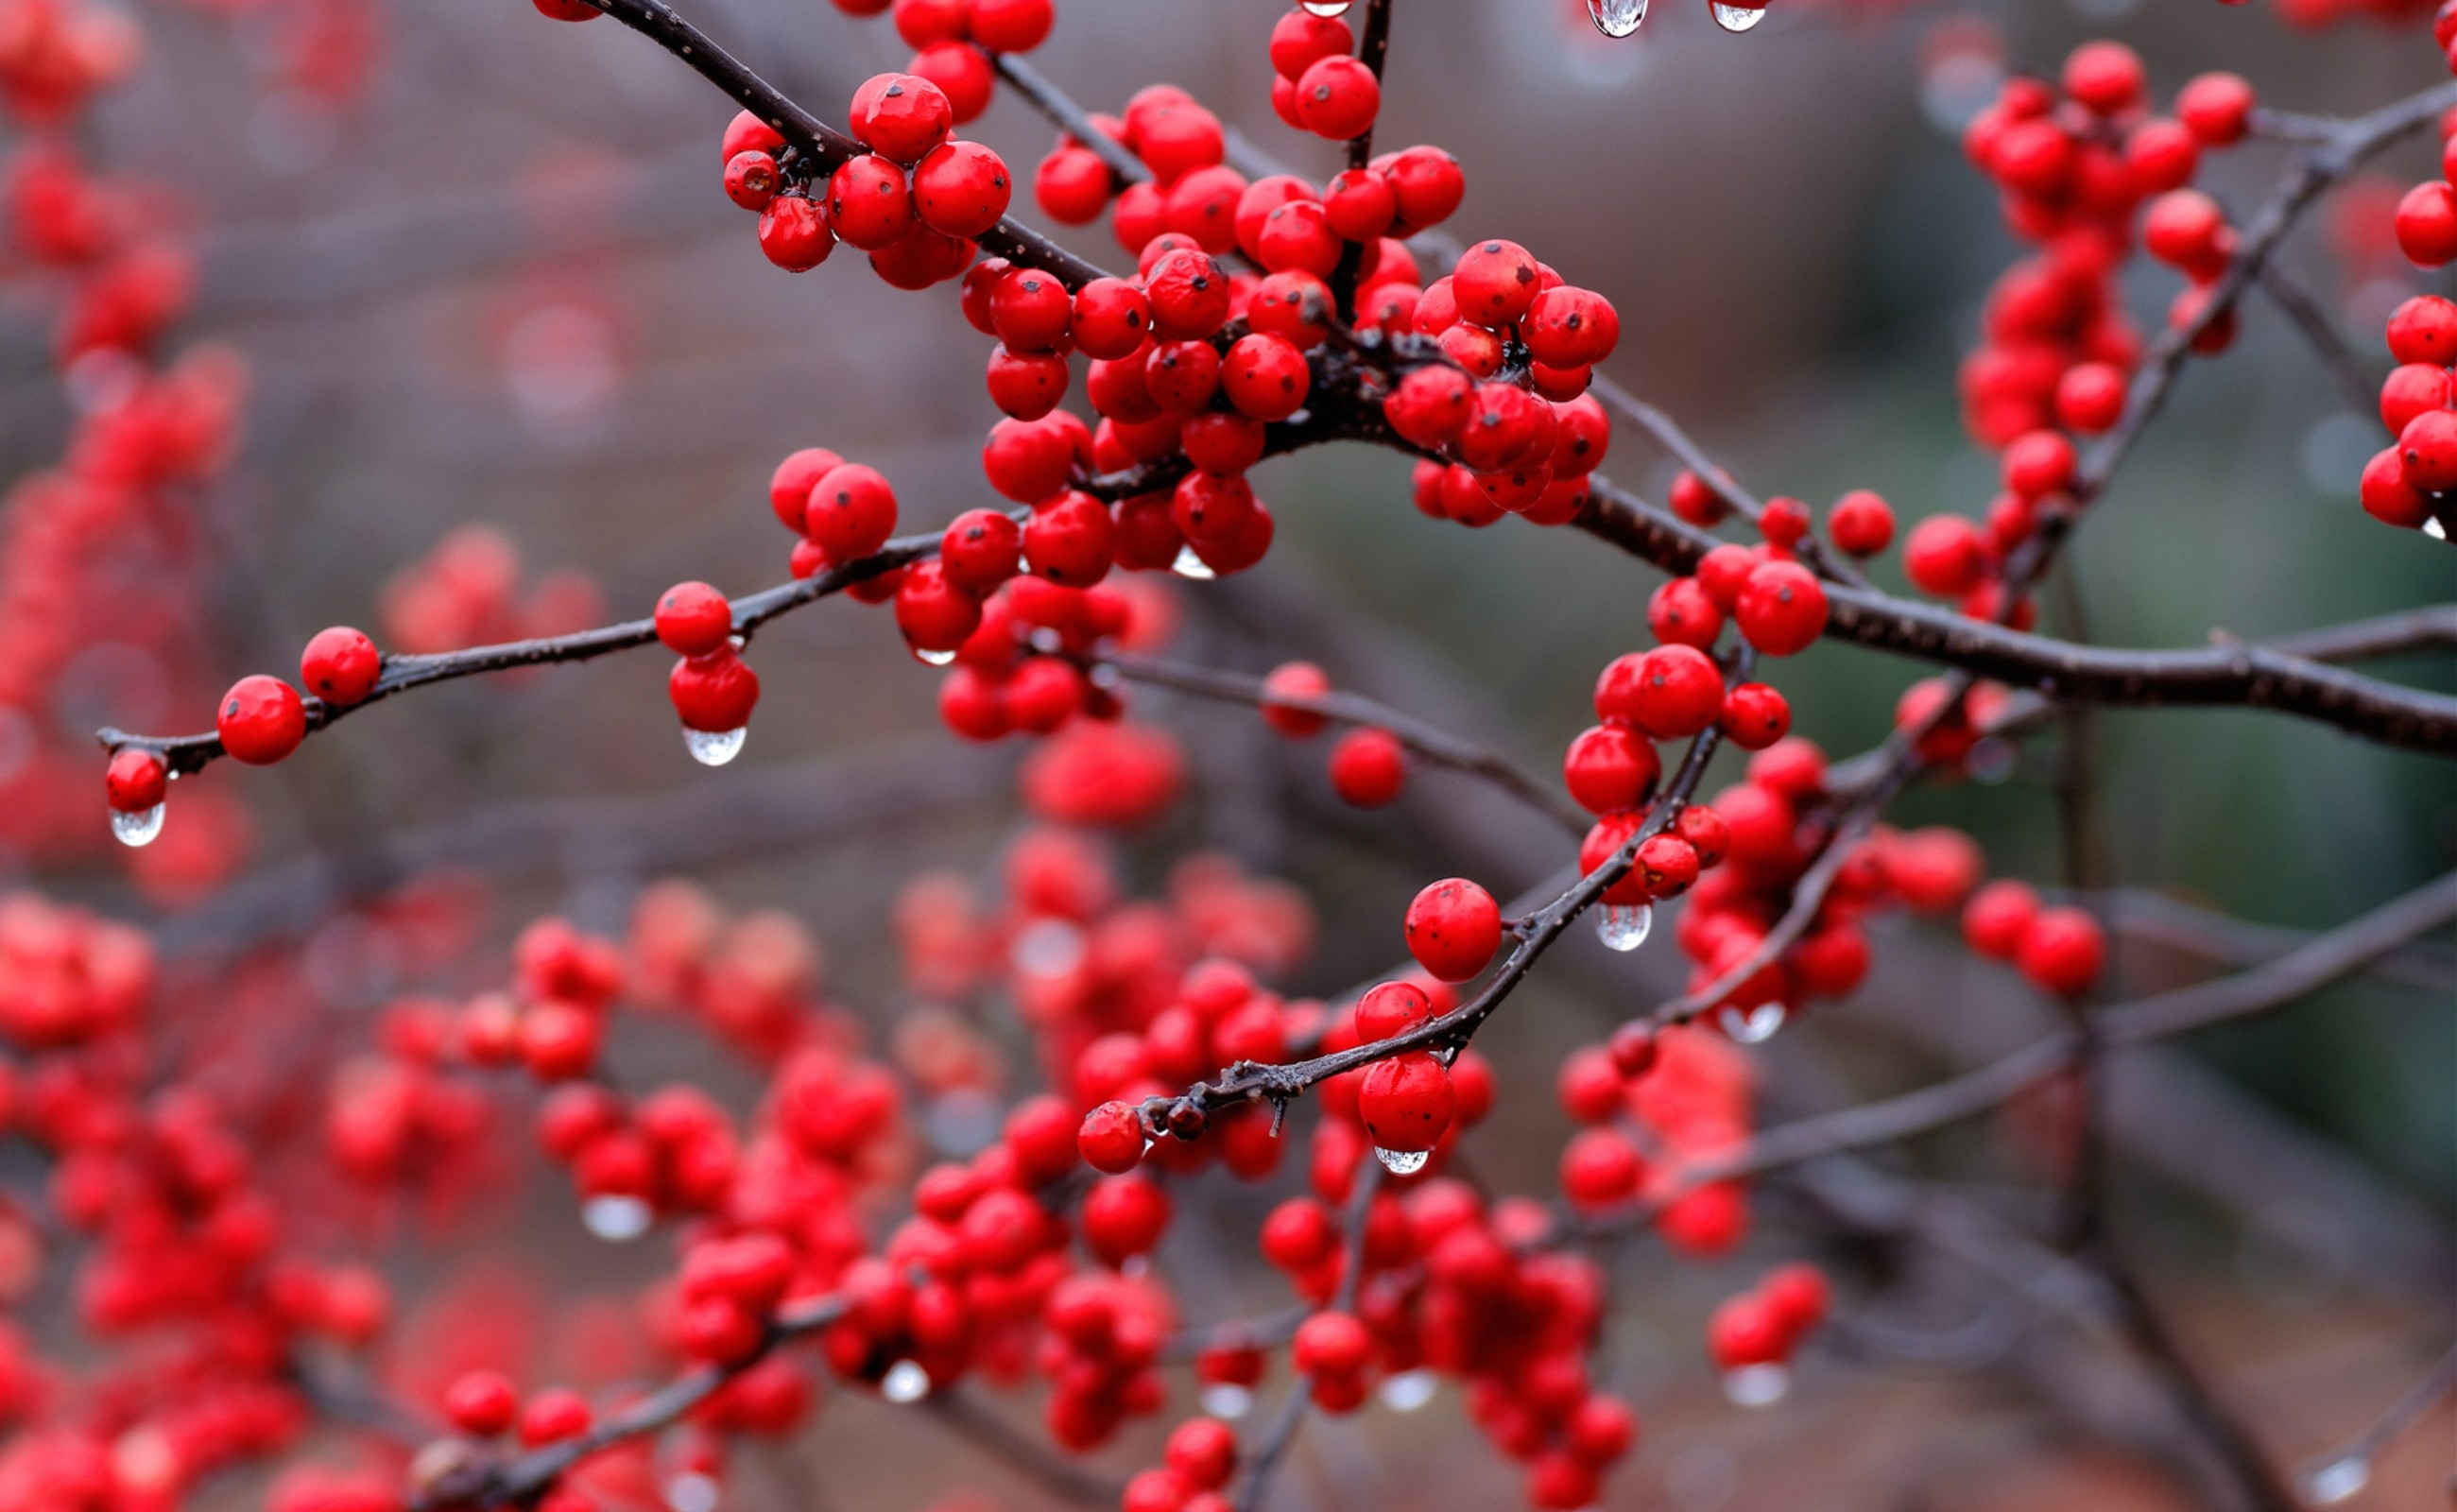 Res: 2600x1600, Red Berry Branch And Rain Drops | 2600 x 1600 | Download | Close